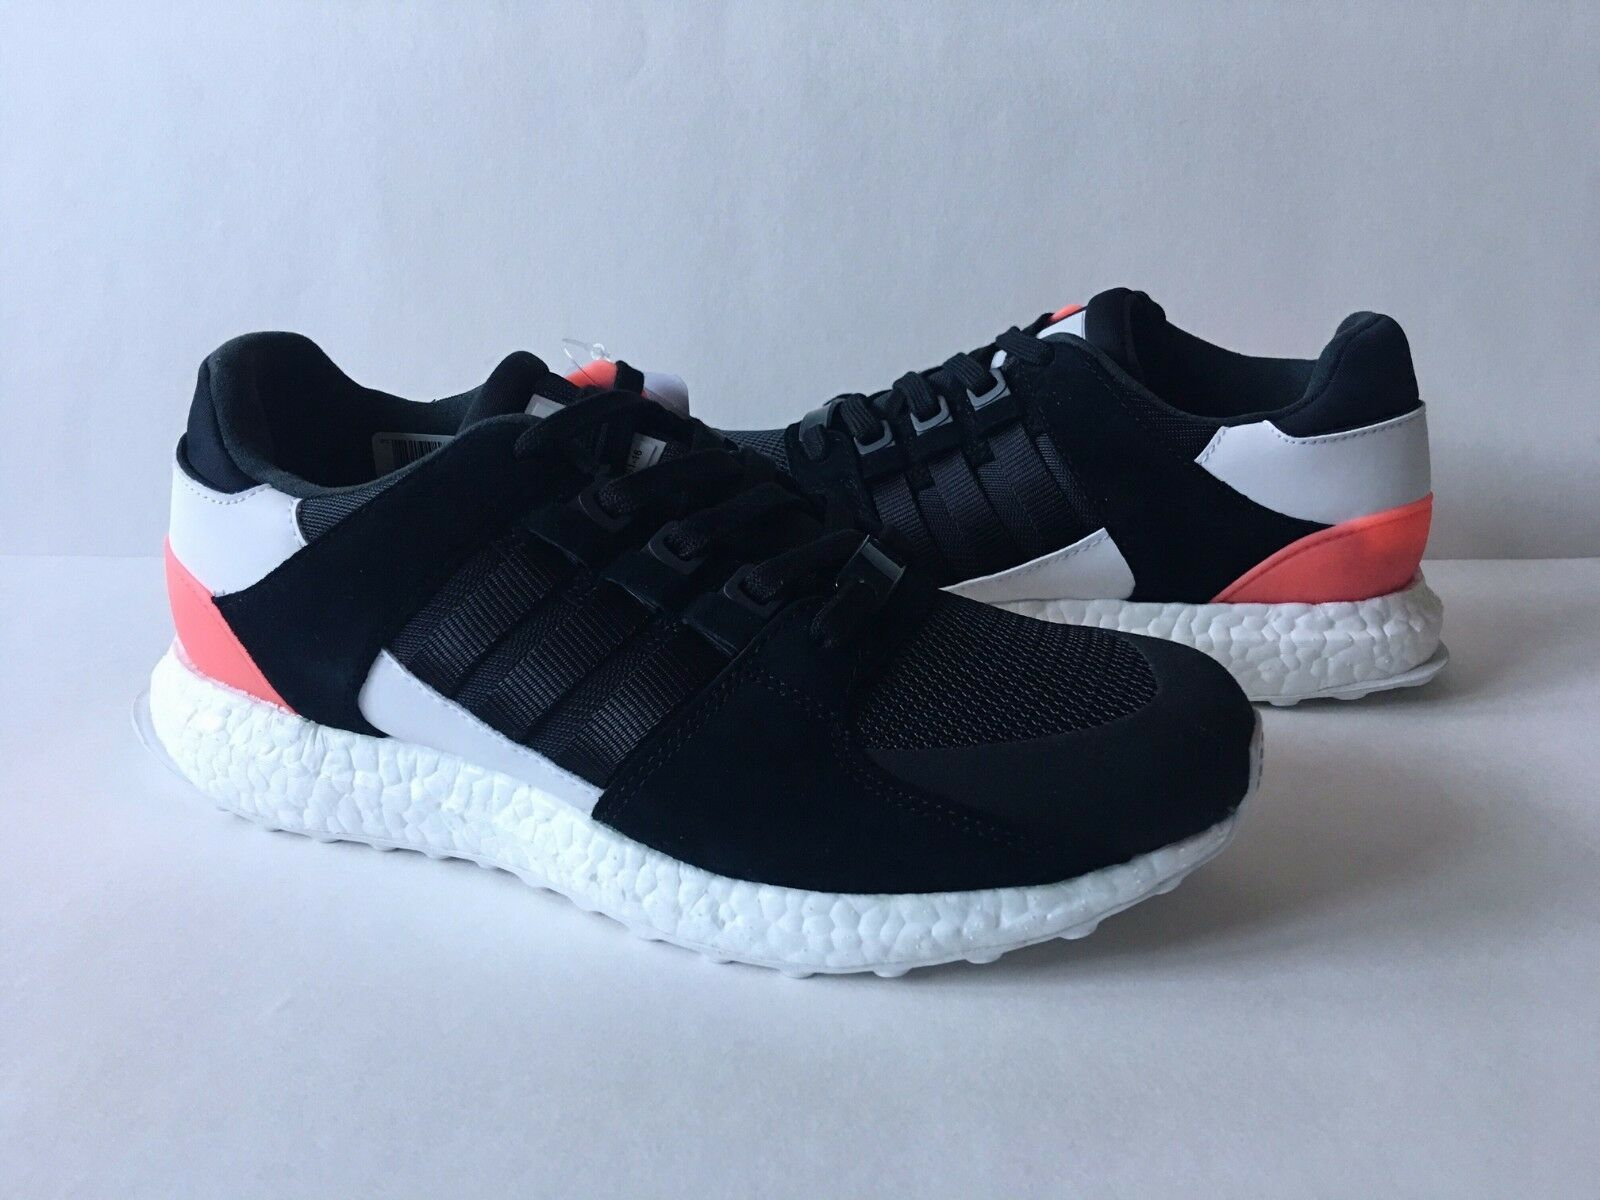 ADIDAS EQT SUPPORT ULTRA Price reduction BOOST TURBO RED CORE BLACK 1.0 2.0 BB1237